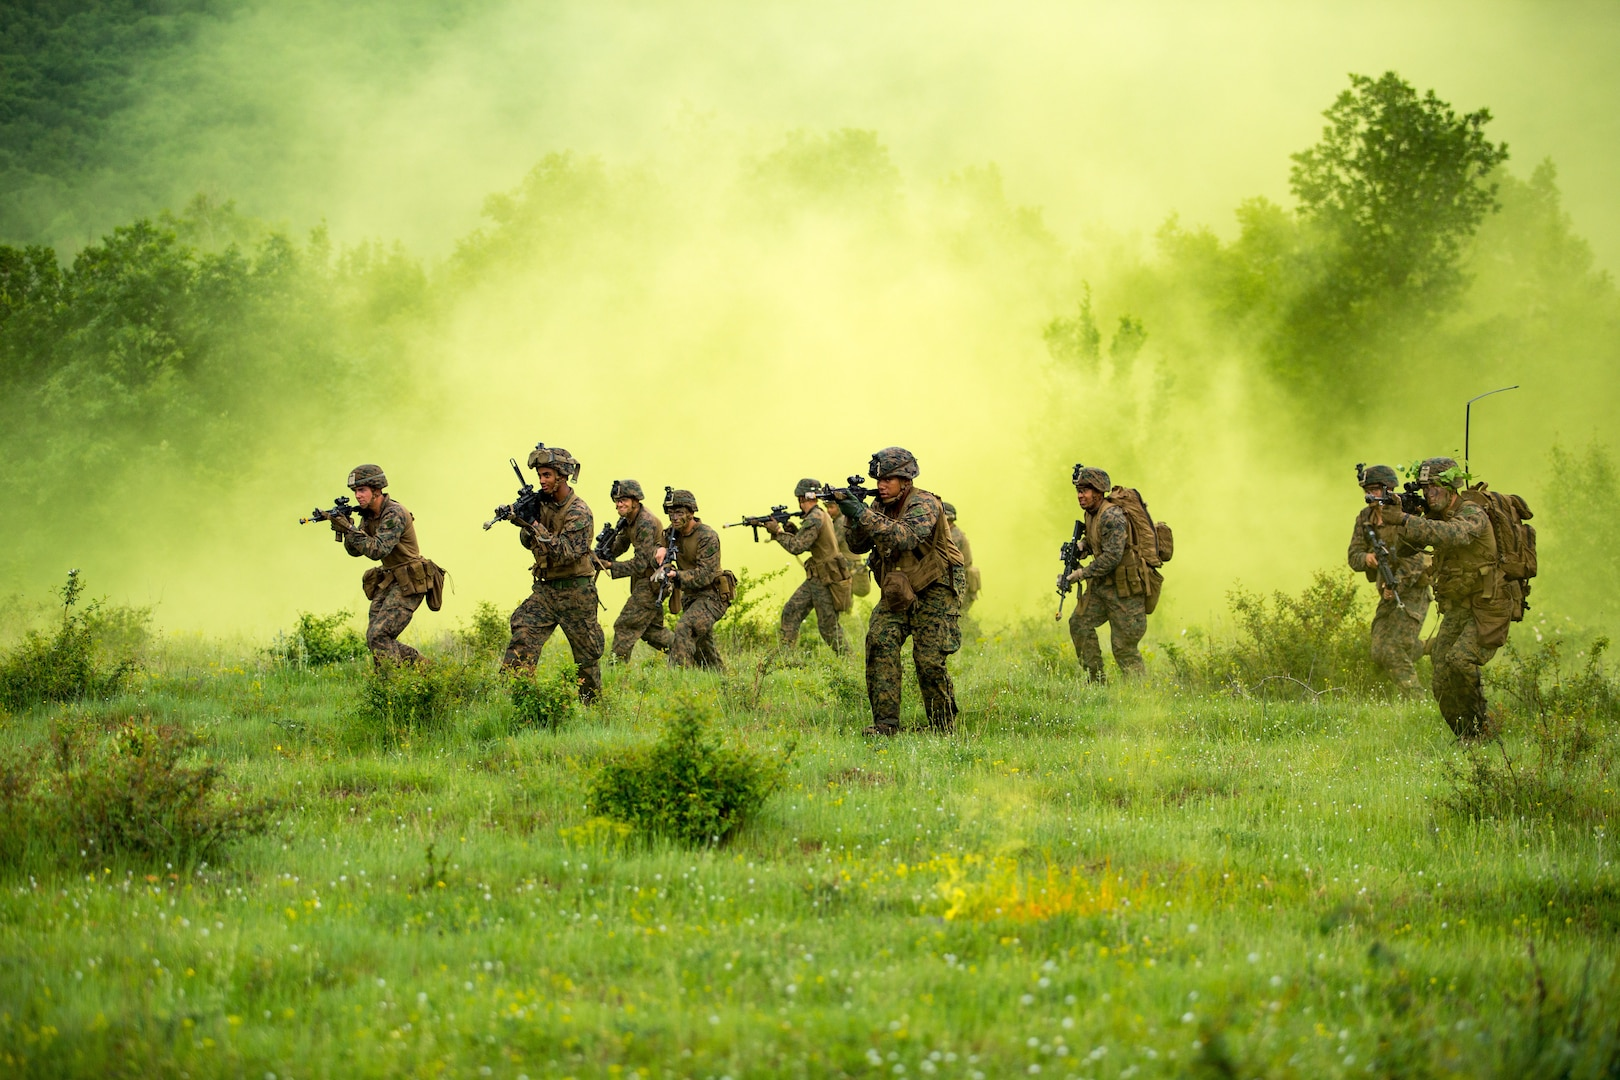 Marines with Black Sea Rotational Force 18.1 advance to their objective during patrolling exercise at Army base Nova Selo Forward Operating Site, Bulgaria, May 10, 2018 (U.S. Marine Corps/Angel D. Travis)